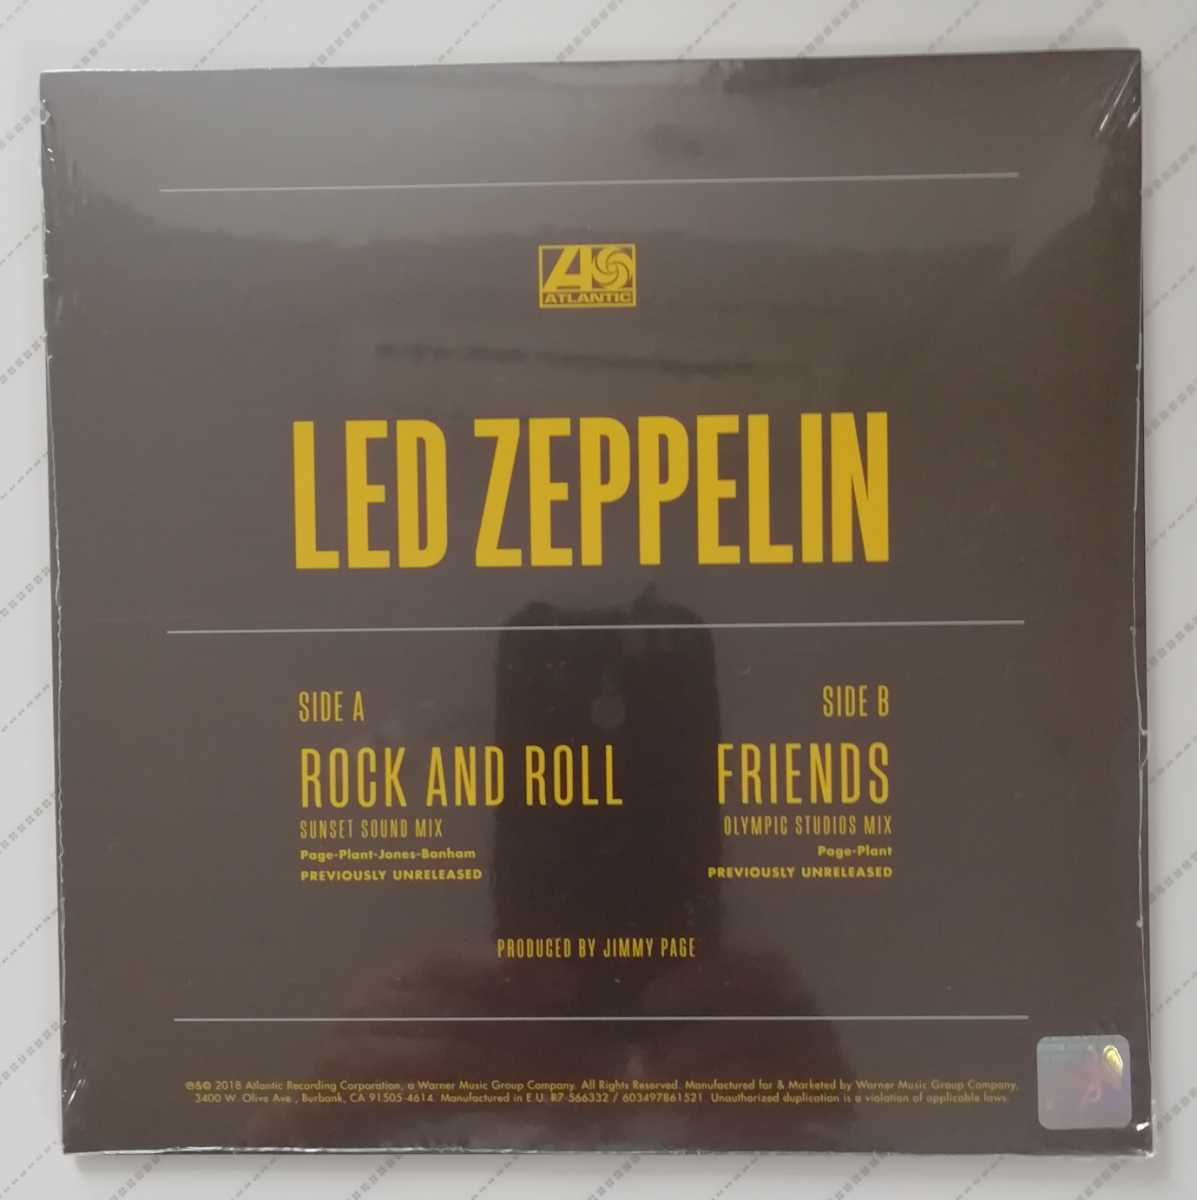 LED ZEPPELIN ROCK AND ROLL/FRIENDS 7inch カラーレコード盤(未開封品)RECORD STORE DAY  レッド・ツェッペリン